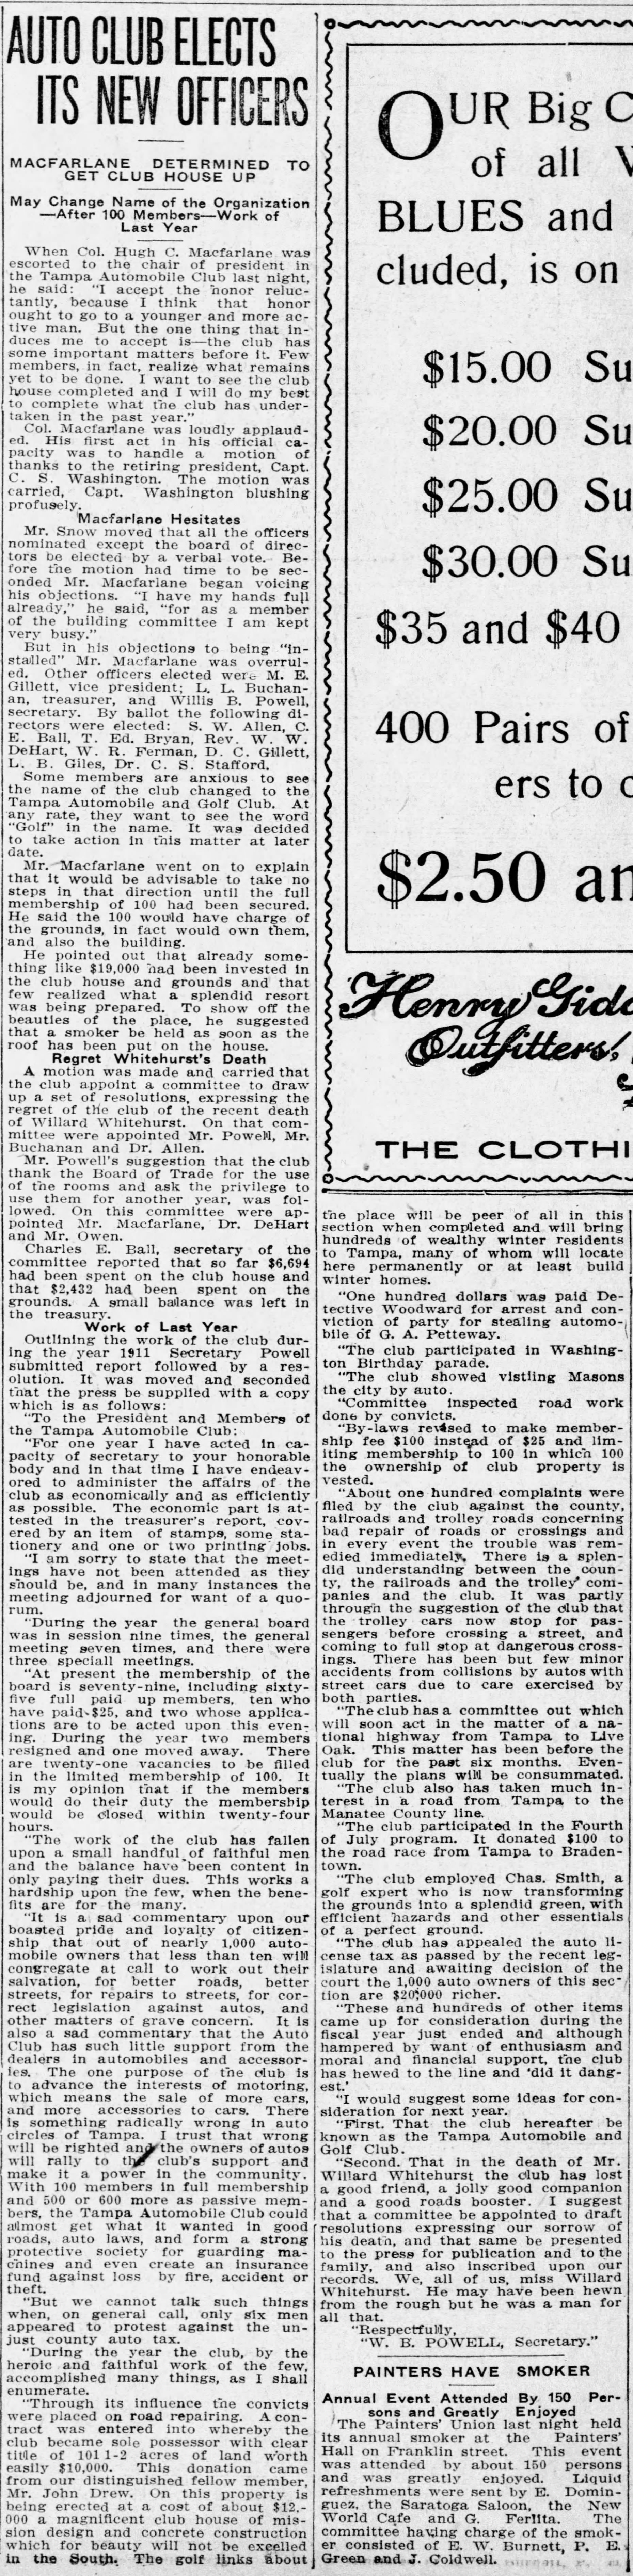 Auto Club Elects its New Officers - Jan 12, 1912 Tampa Tribune